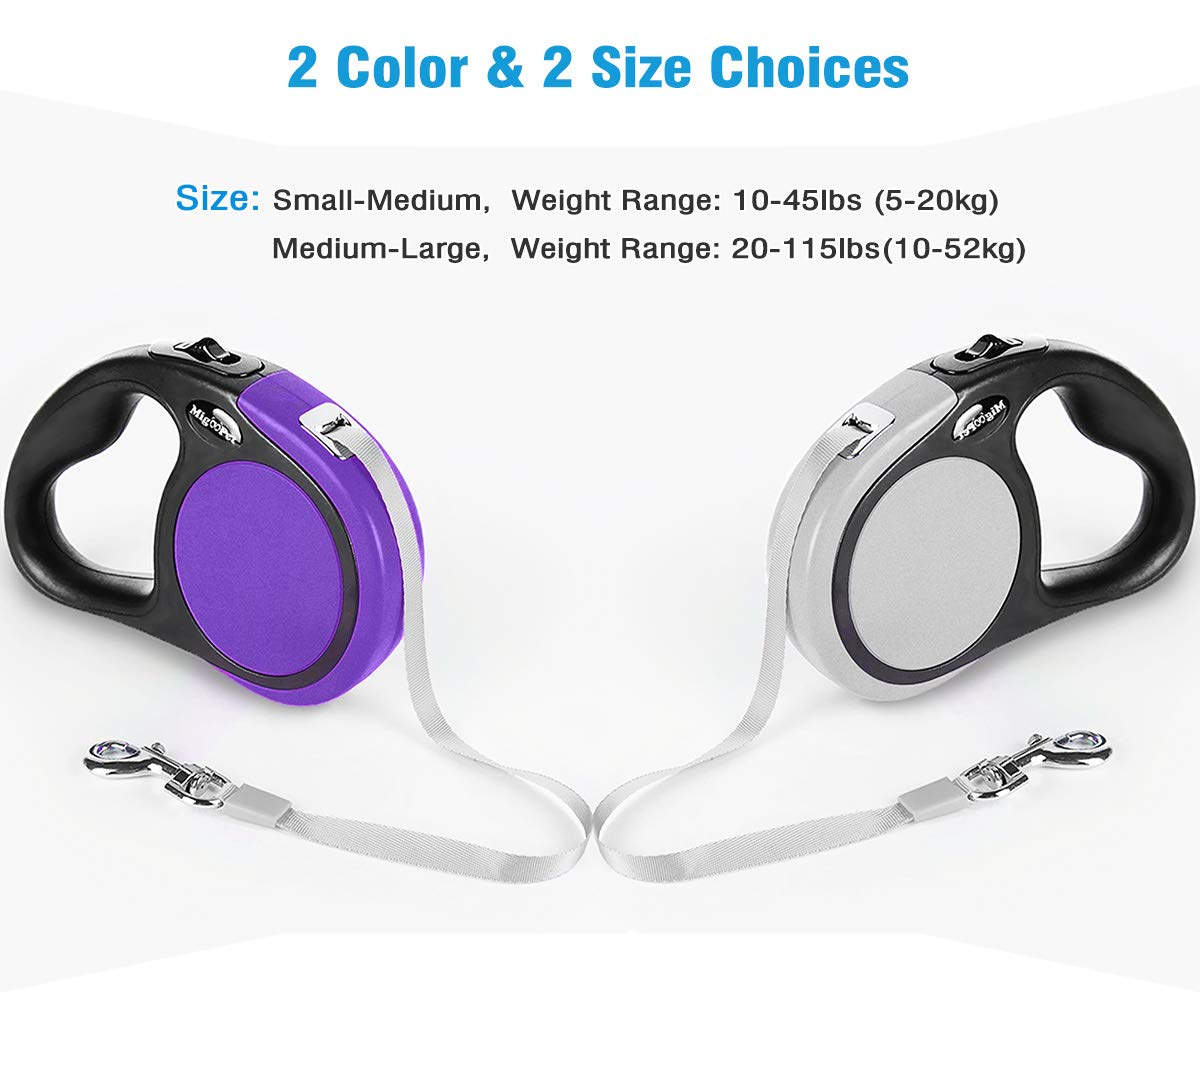 Heavy Duty Retractable Dog Leash-16ft/5m Walking Leash-Strong Retractable Leashes for Medium to Large Dogs up to 115 lbs, Upgraded One Button Lock System, Non Slip Rubbery Grip, Tangle Free Pet Leash